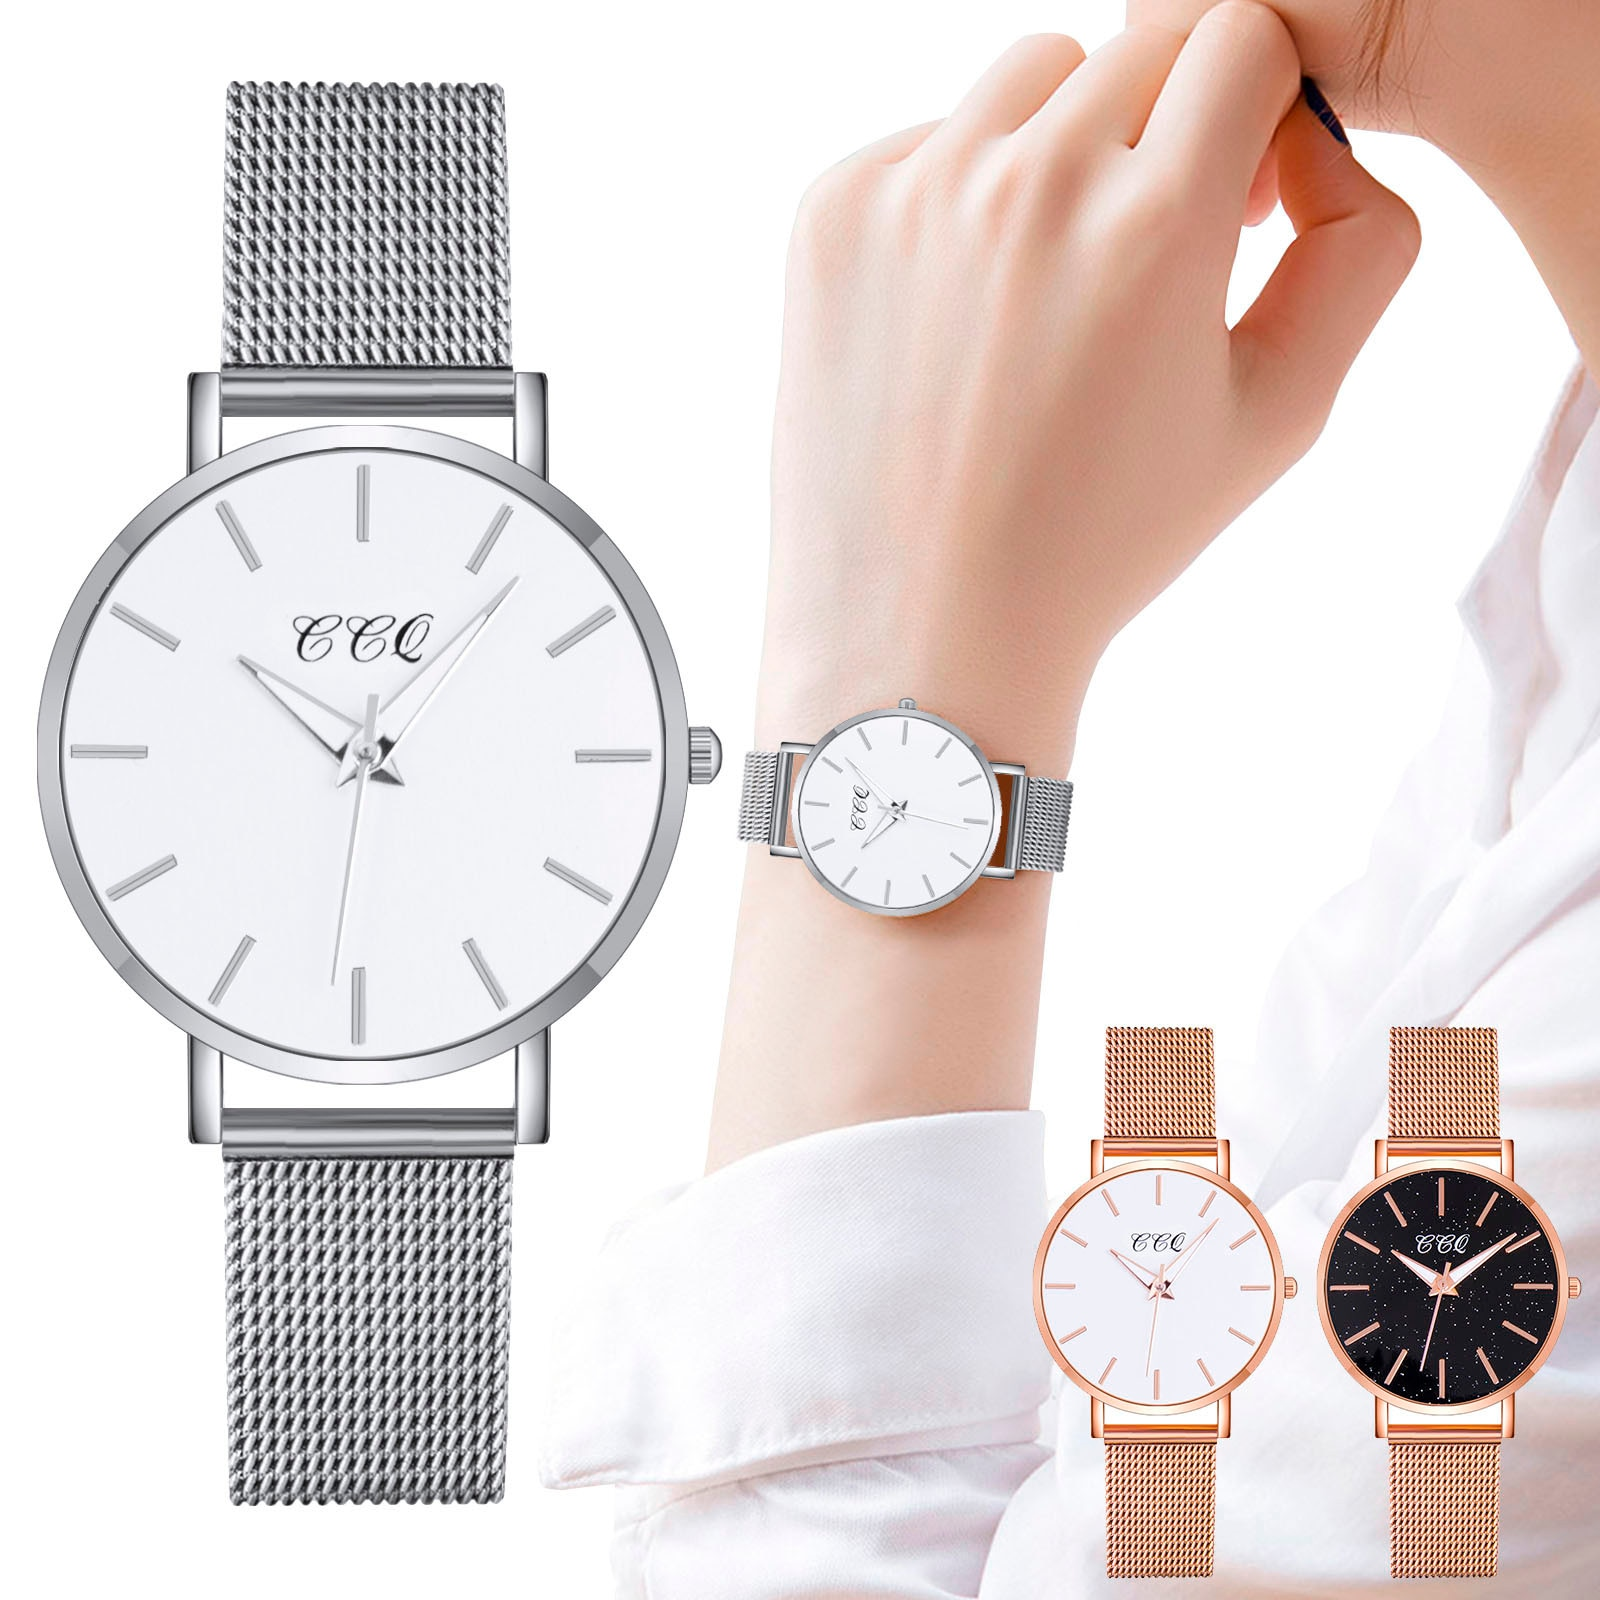 CCQ Brand Minimalist Quartz Watch without Numerals Scale Stainless Steel Dial Watches for Women Ladies Wristwatch Montre Femme